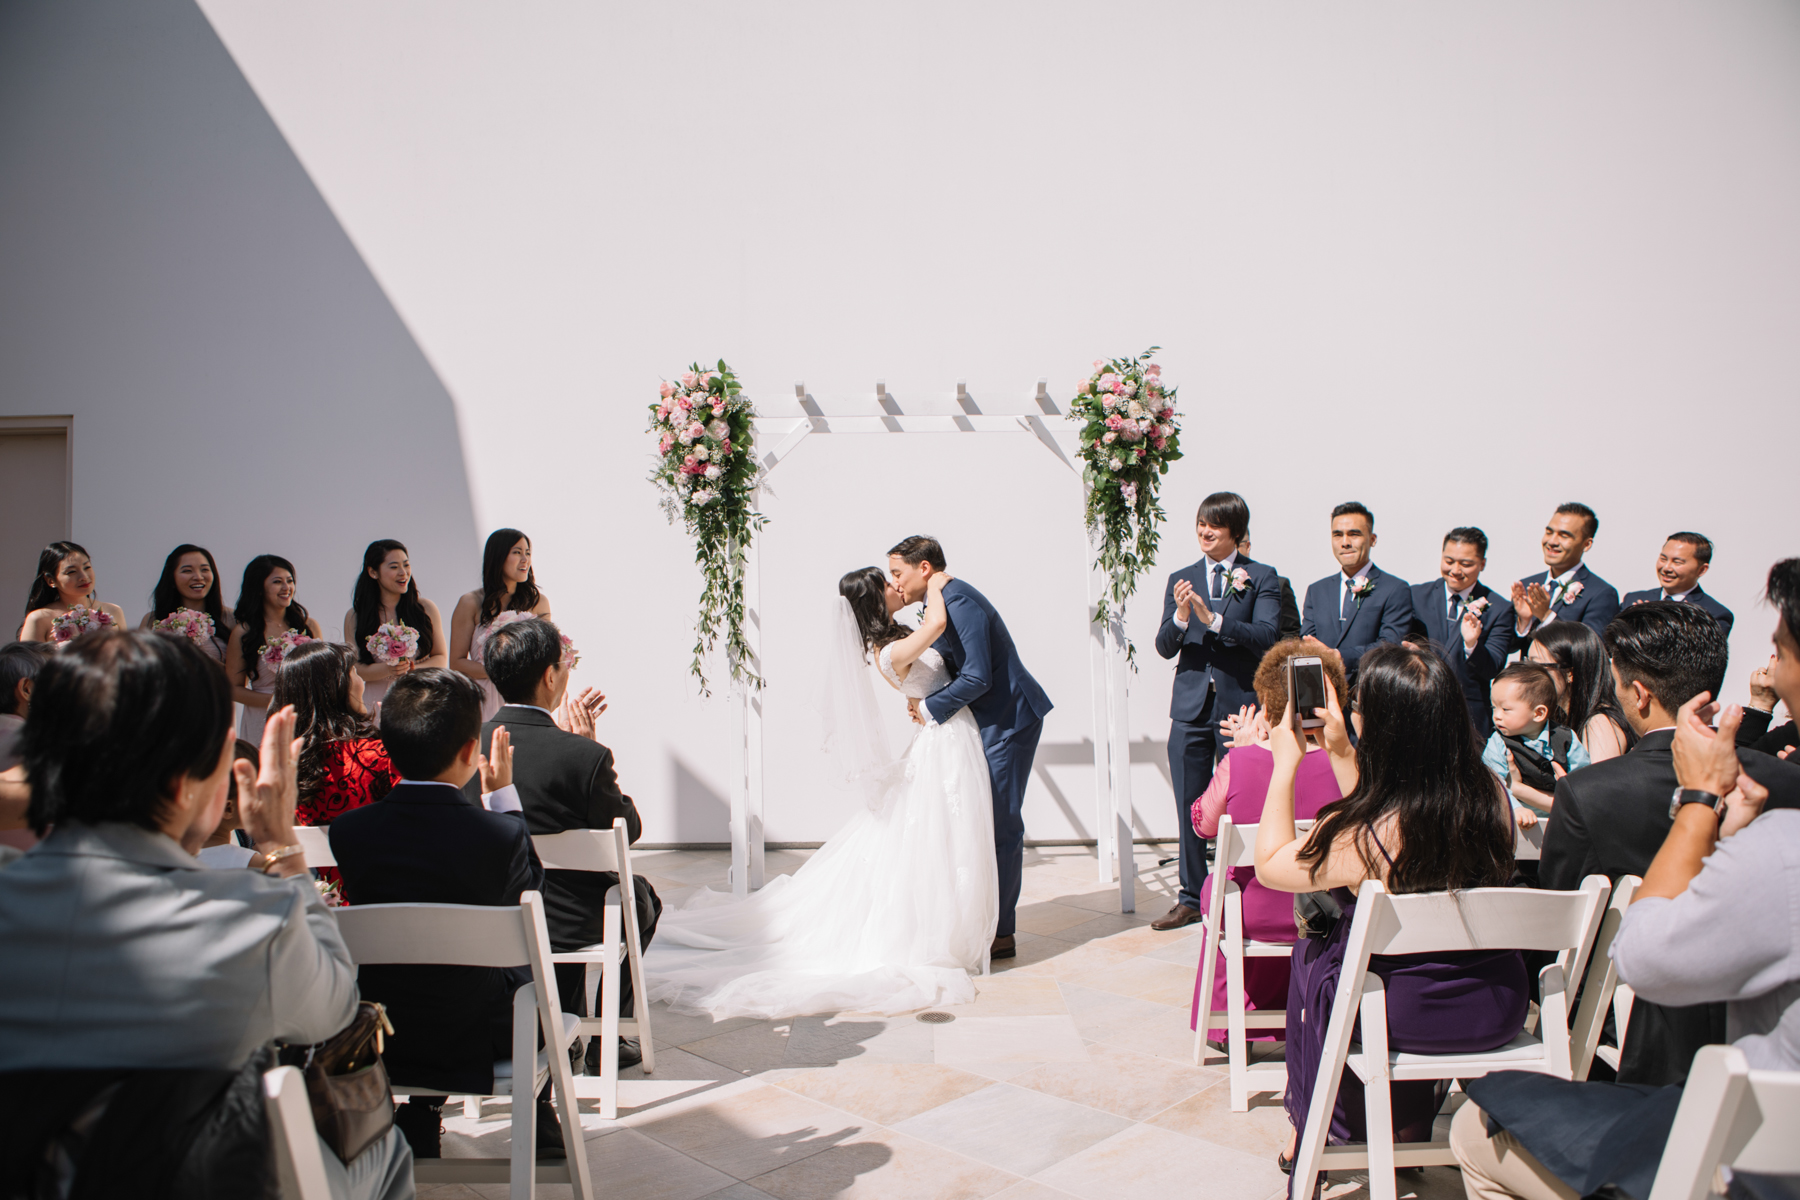 A small wedding venue outside with a bride and groom kissing in front of a white wall as their guests celebrate